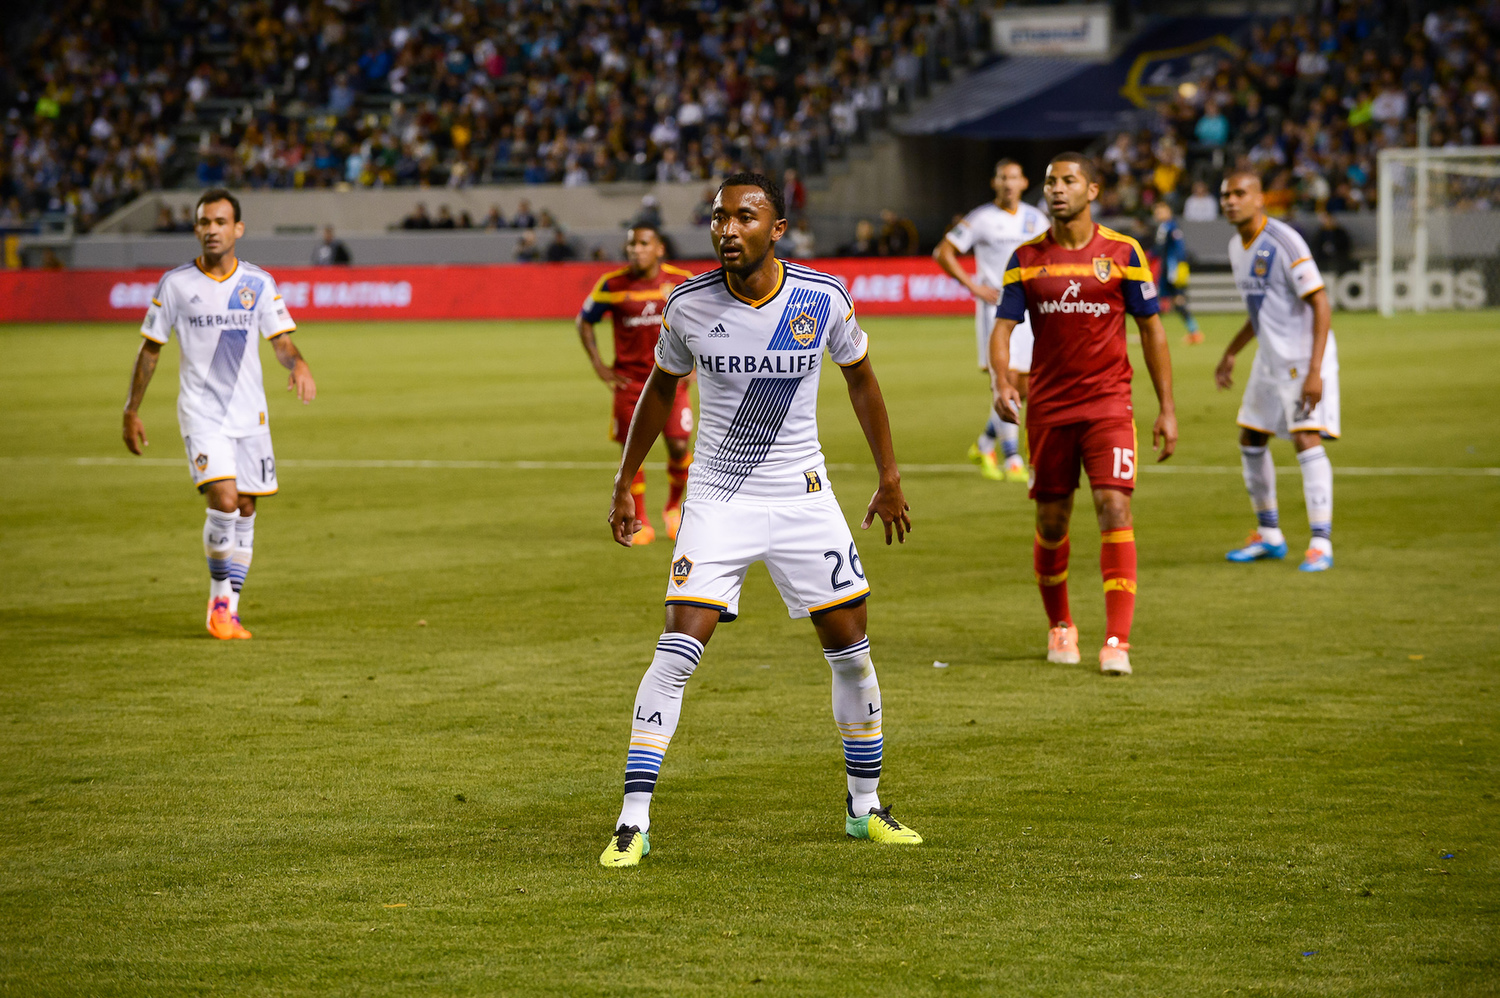 LA Galaxy v Real Salt Lake at StubHub Center on March 8, 2014. Photo by Mora/LA Galaxy.